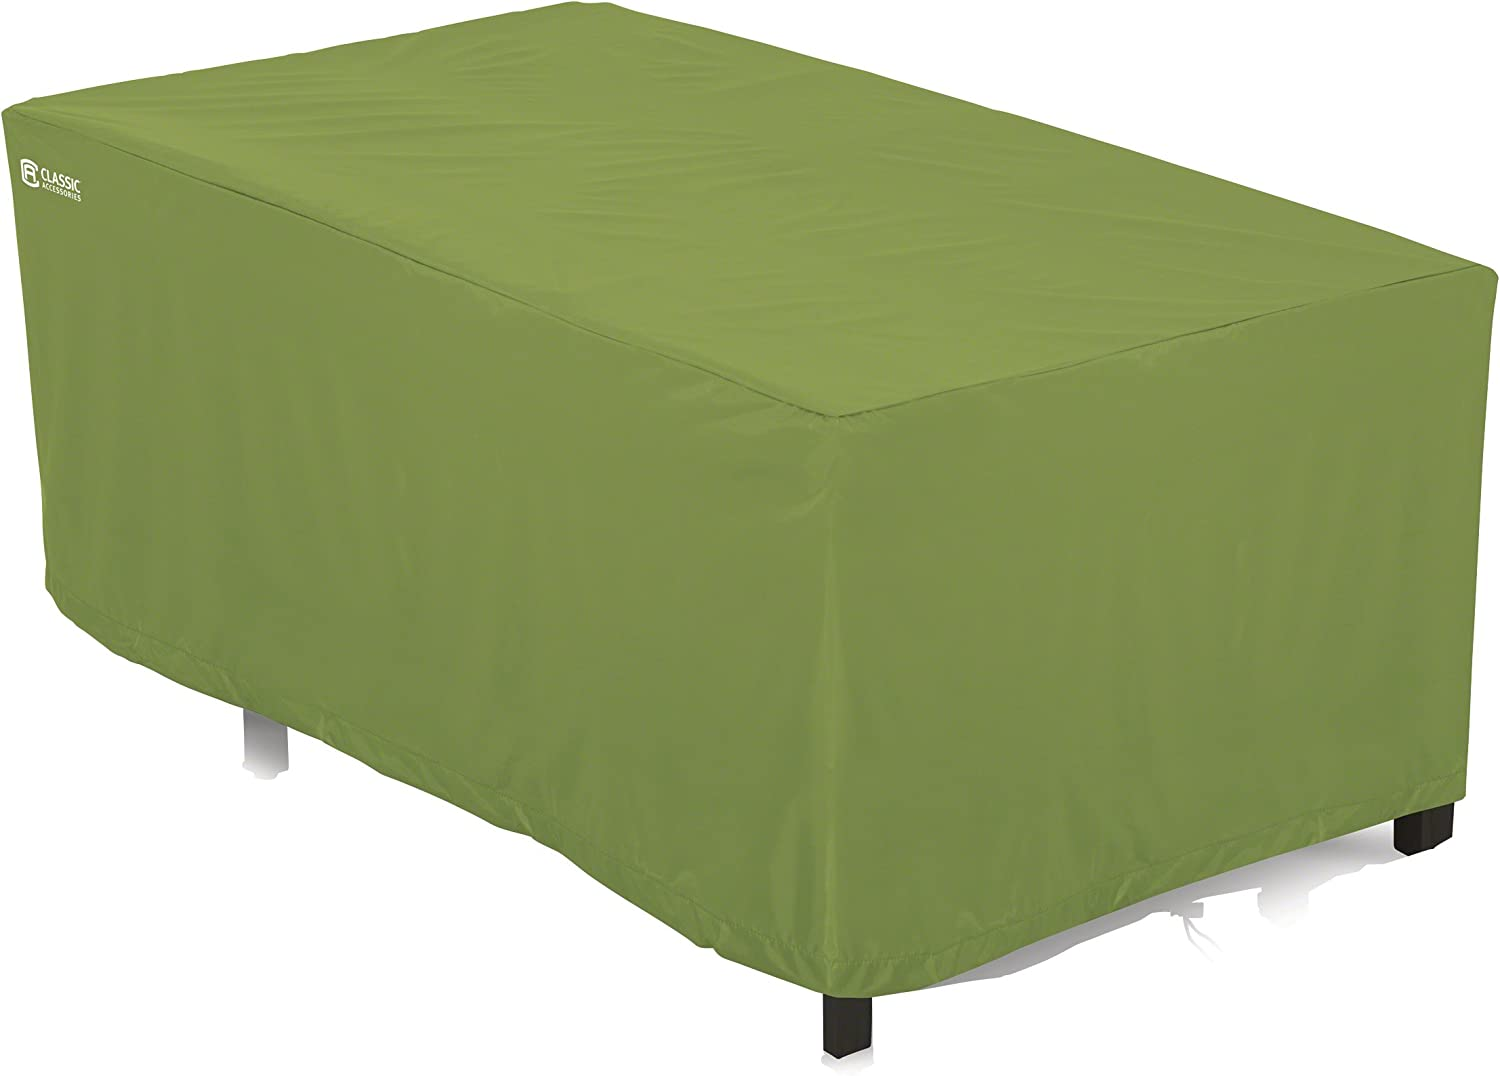 Classic Accessories Sodo Patio/Outdoor Coffee Table Cover - Tough and Weather Resistant Patio Set Cover, Rectangular, Herb (55-362-011901-EC)